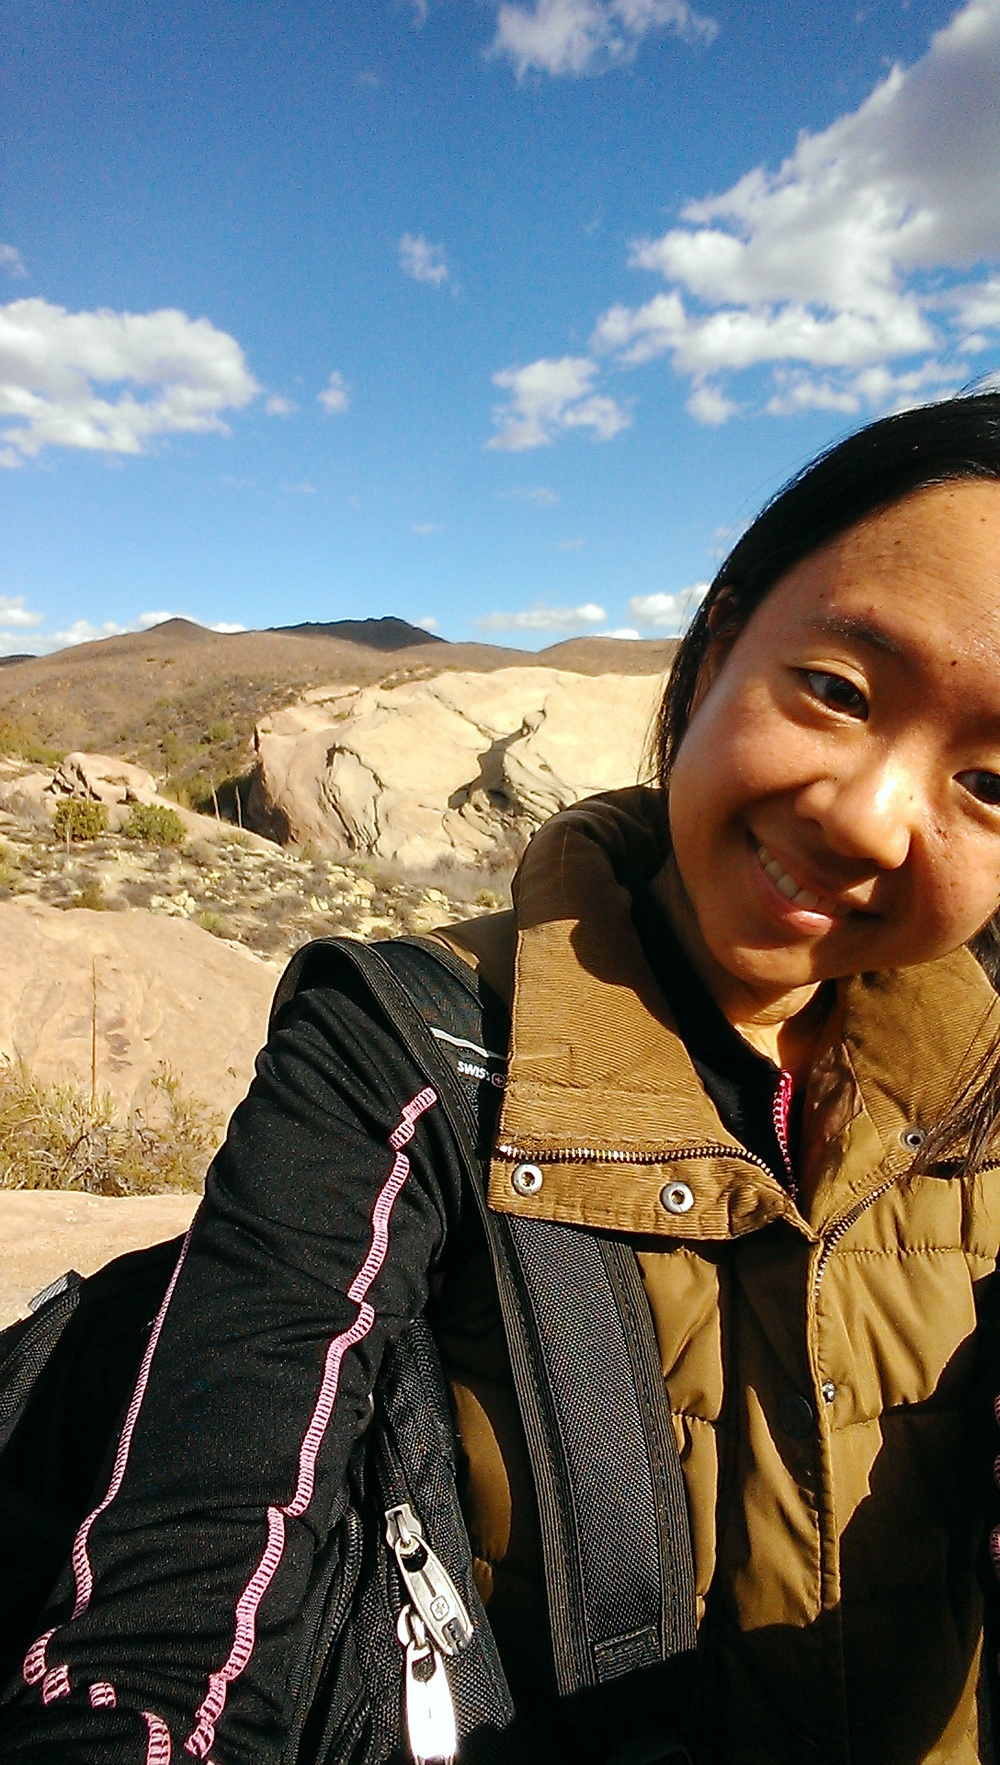 Jessica Lin - Webmaster   3rd Year Applied Geophysics B.S. student  Jessica is a curious explorer who loves hiking canyons and venturing in the wilderness. She also enjoys reading, playing cello, and collecting minerals.